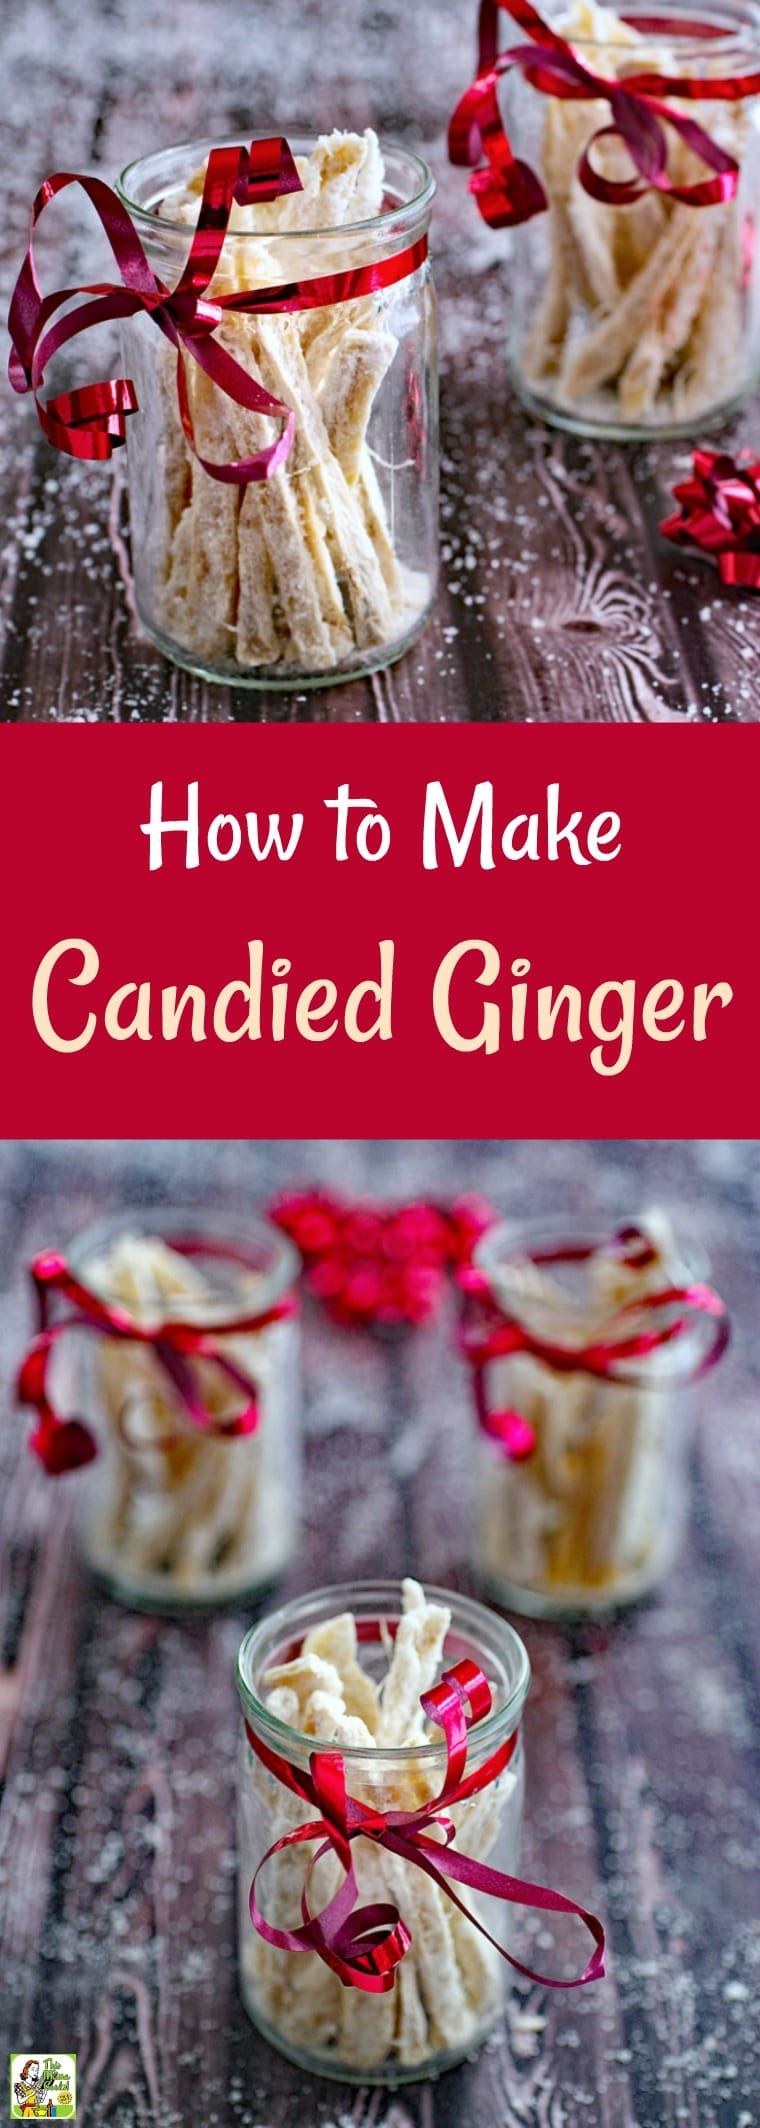 How to Make a Candied Ginger Recipe